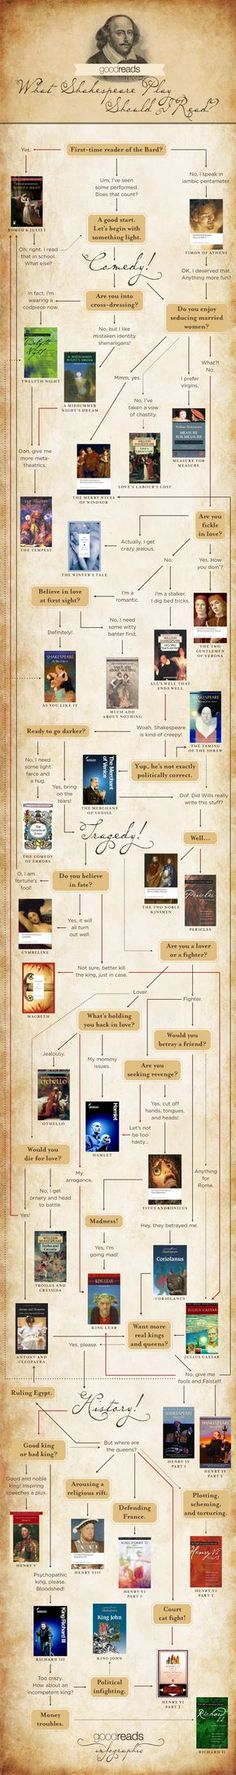 What Shakespeare play should I Read? via Goodreads